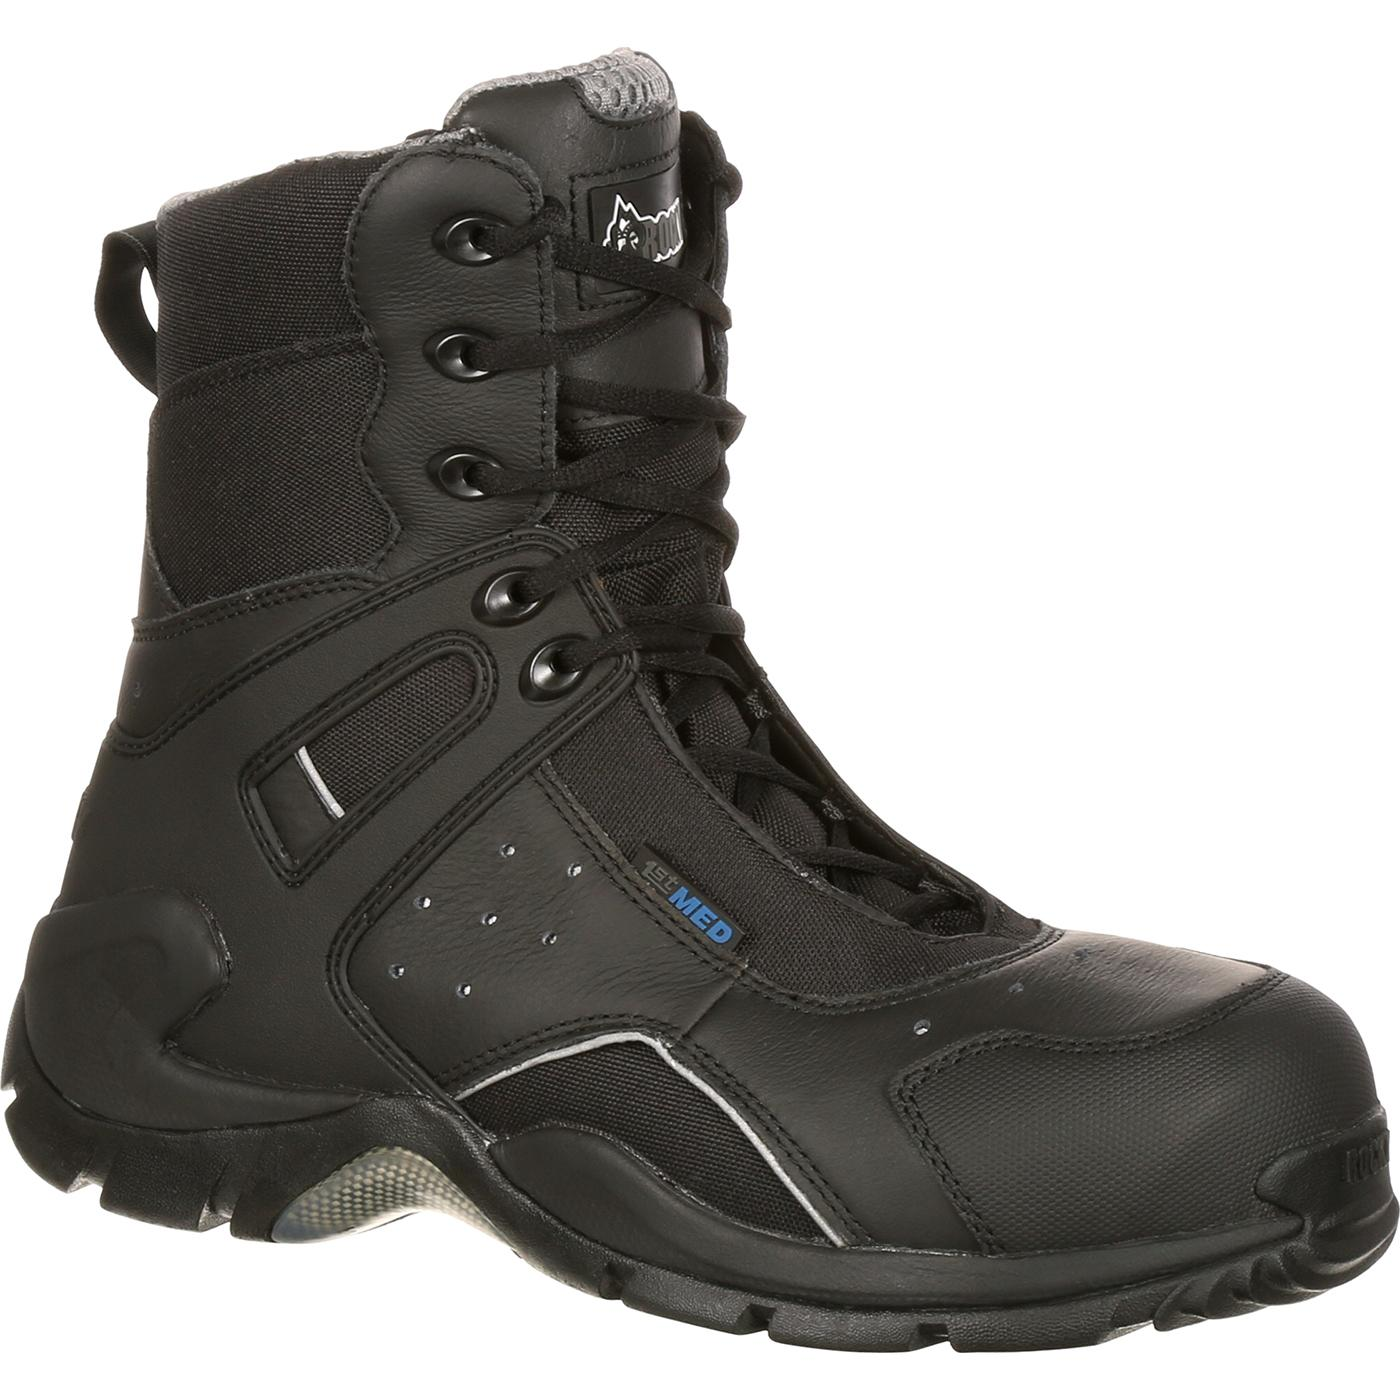 8 Quot Carbon Fiber Toe Waterproof Work Boots Rocky 1st Med